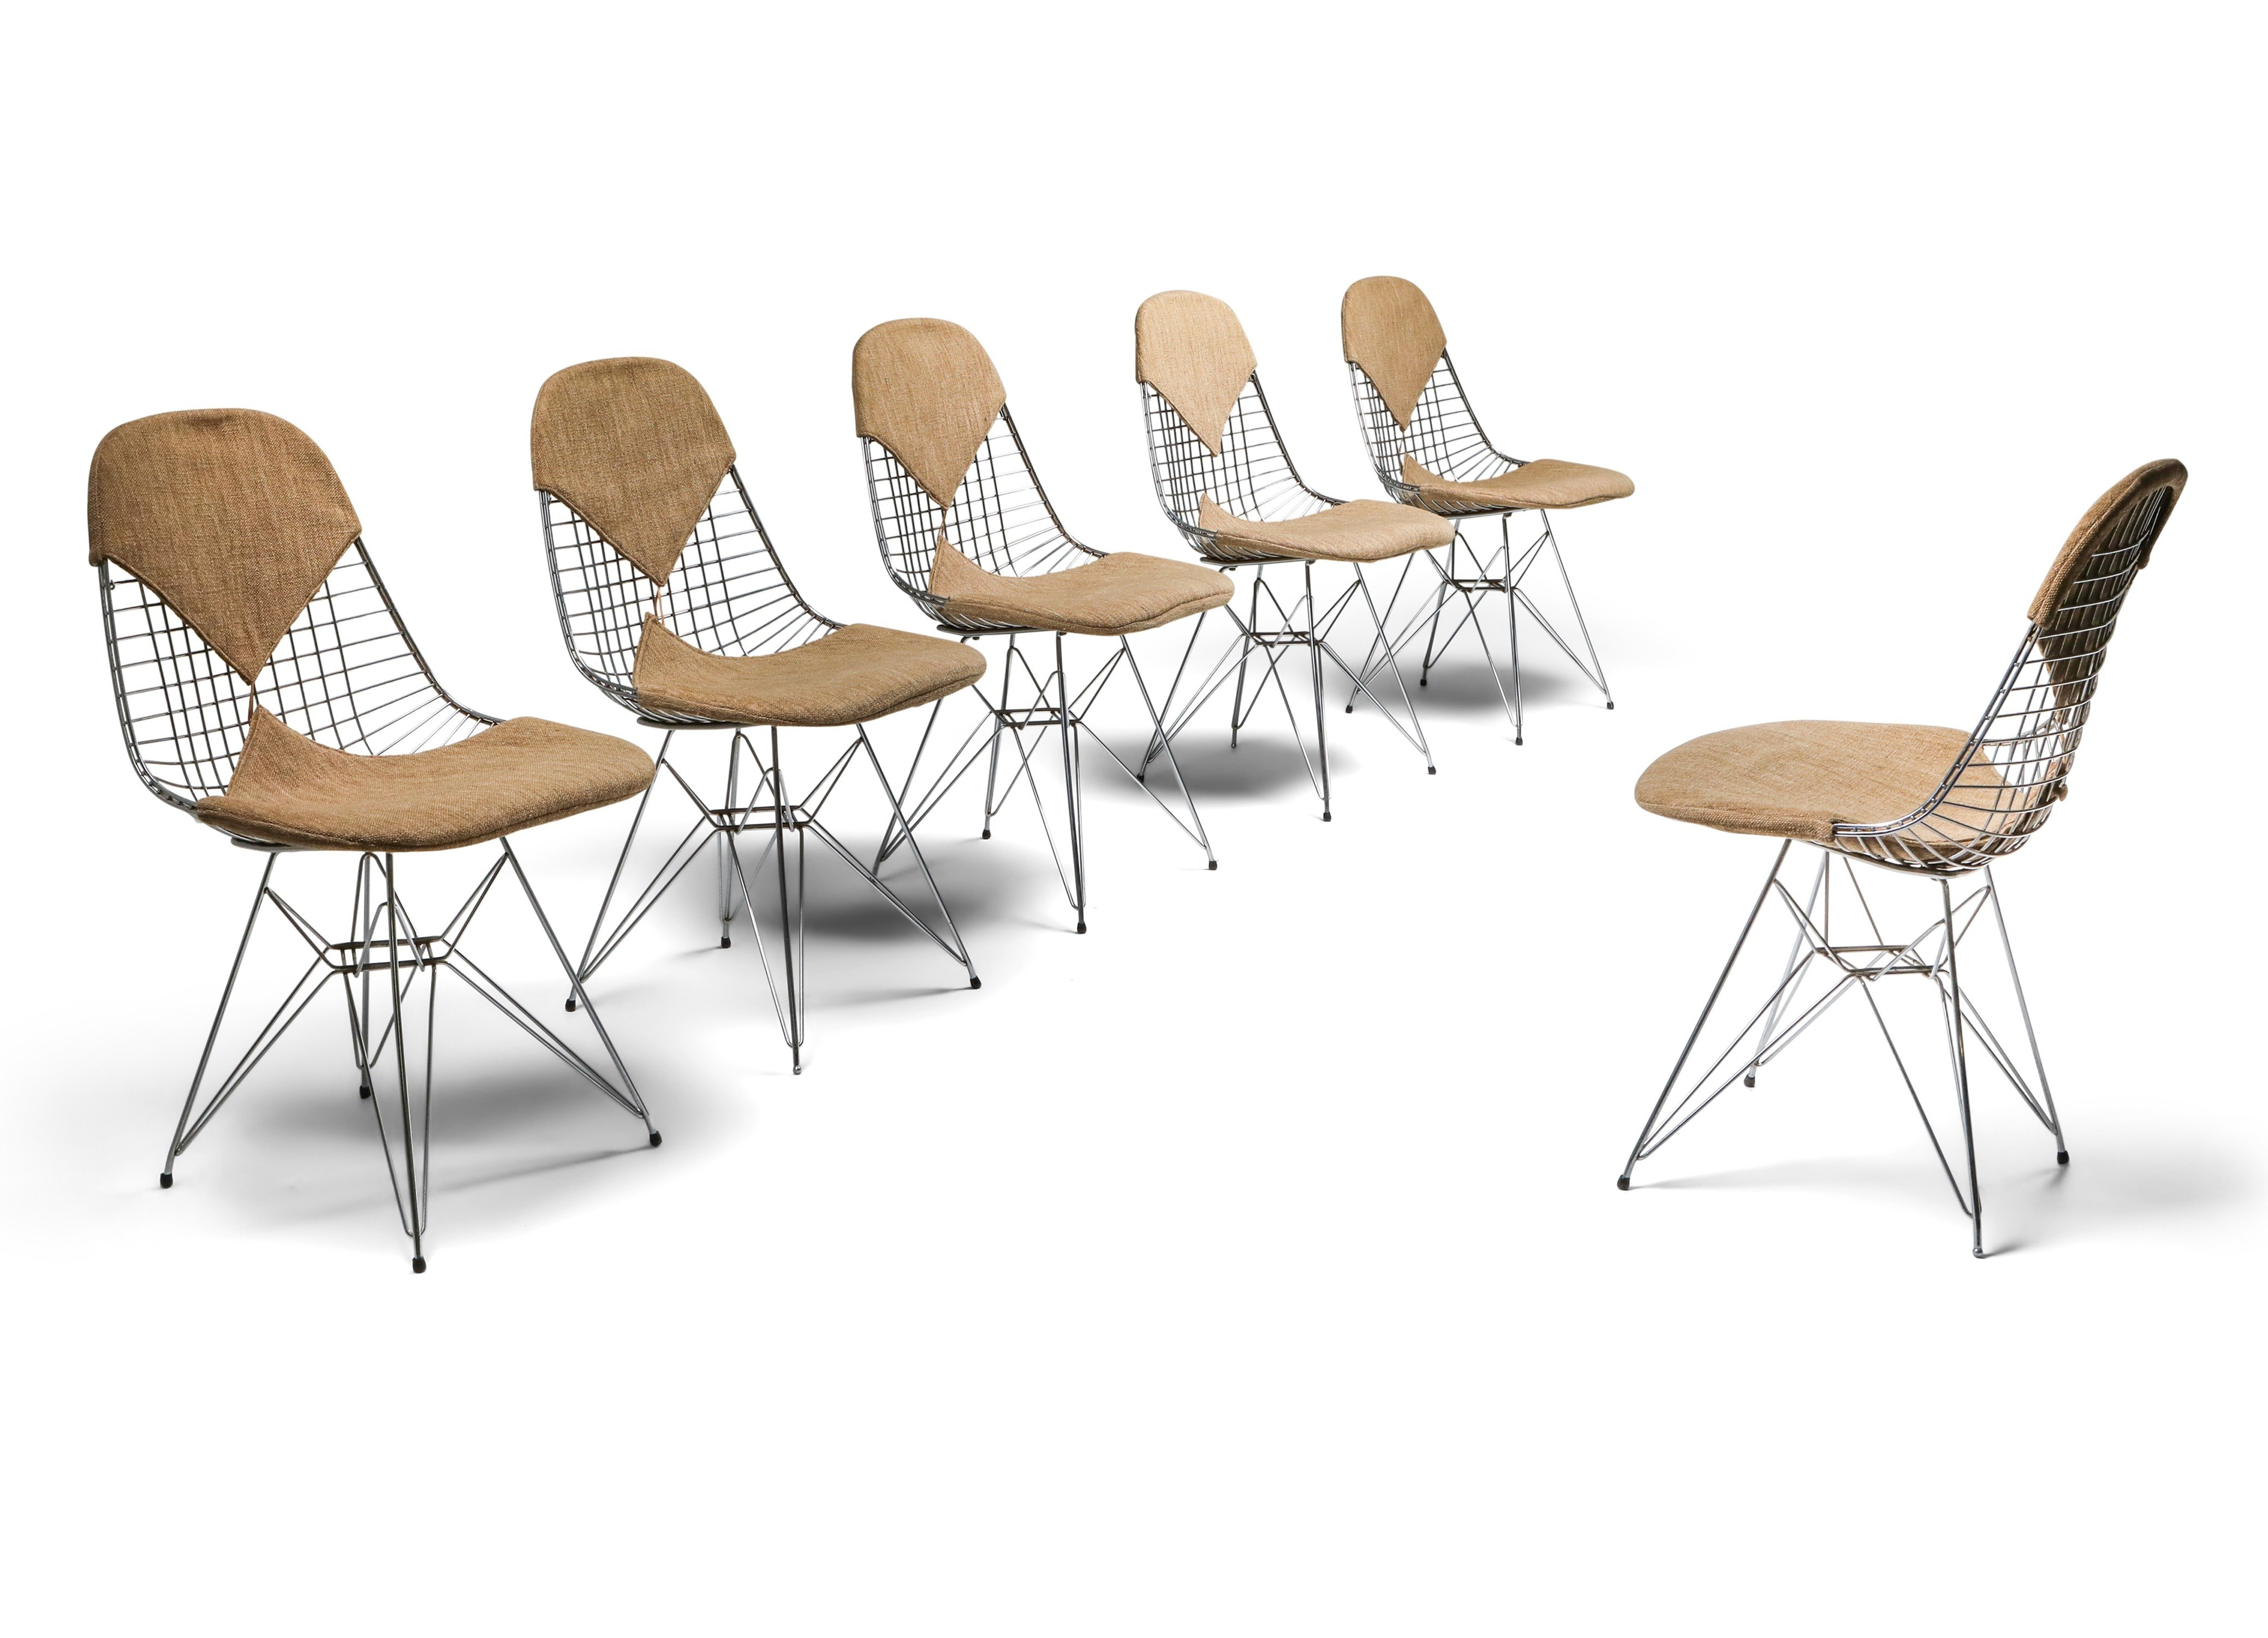 Chair Eames Eames Bikini Dkr Wire Chair In Original Canvas, 1960's | #142478